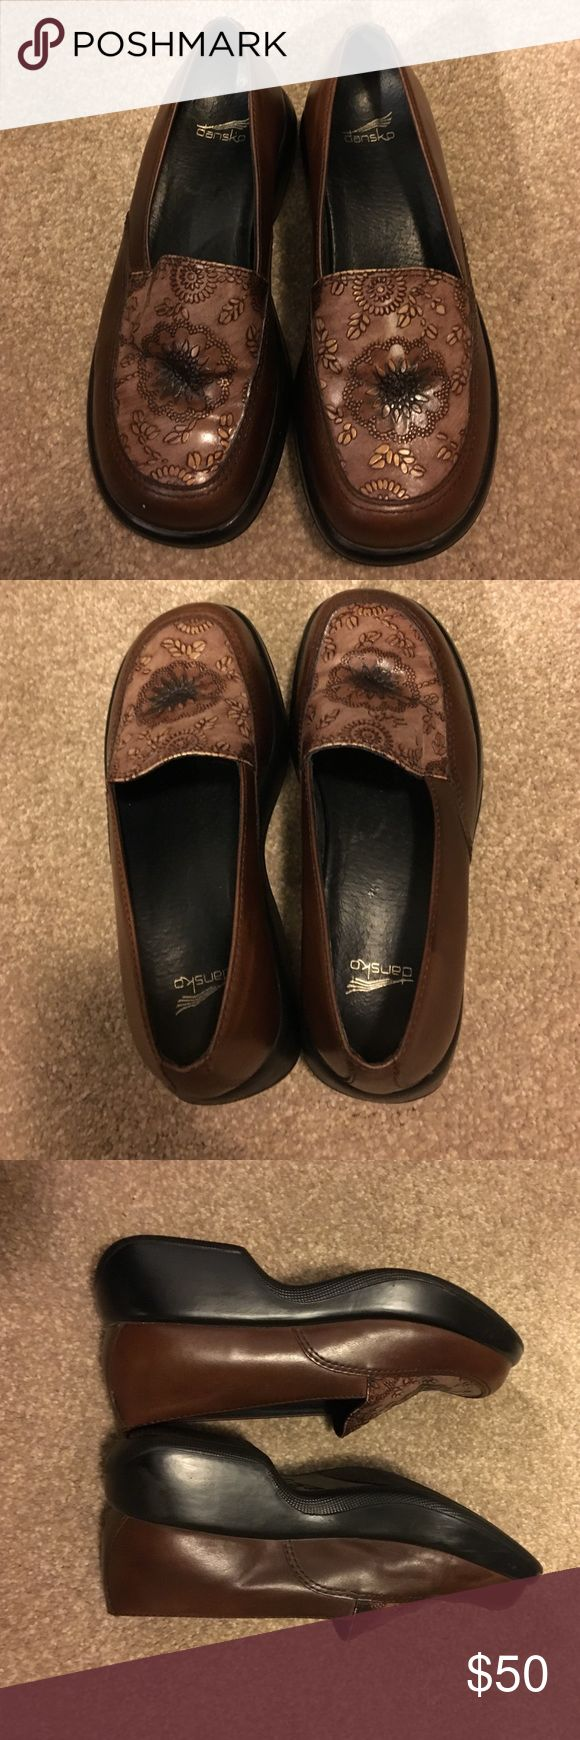 👢🕶Dansko ladies Shoes 👢🕶 size 37 These pups are nice. Brown with flower in the middle.. Very comfy. If you have wore this brand you know they are great shoes for all day wear. Size 37 -(7-7.5) new condition. SFH. Thanks for shopping my closet. Dansko Shoes Mules & Clogs